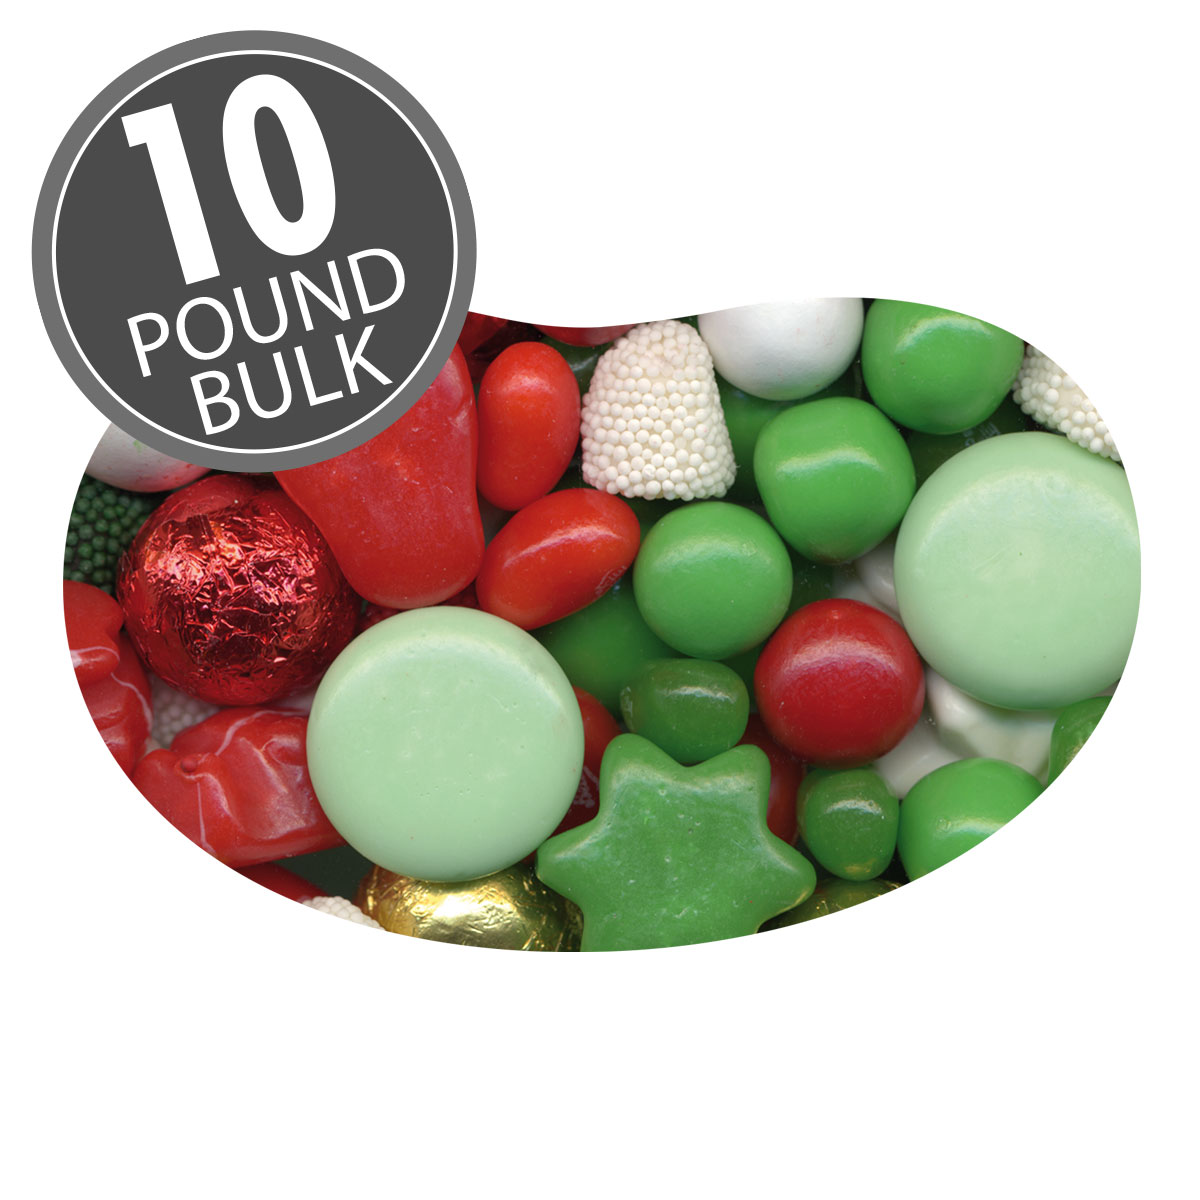 Multicolored Candy and Jelly Beans | Jelly Belly Candy Company